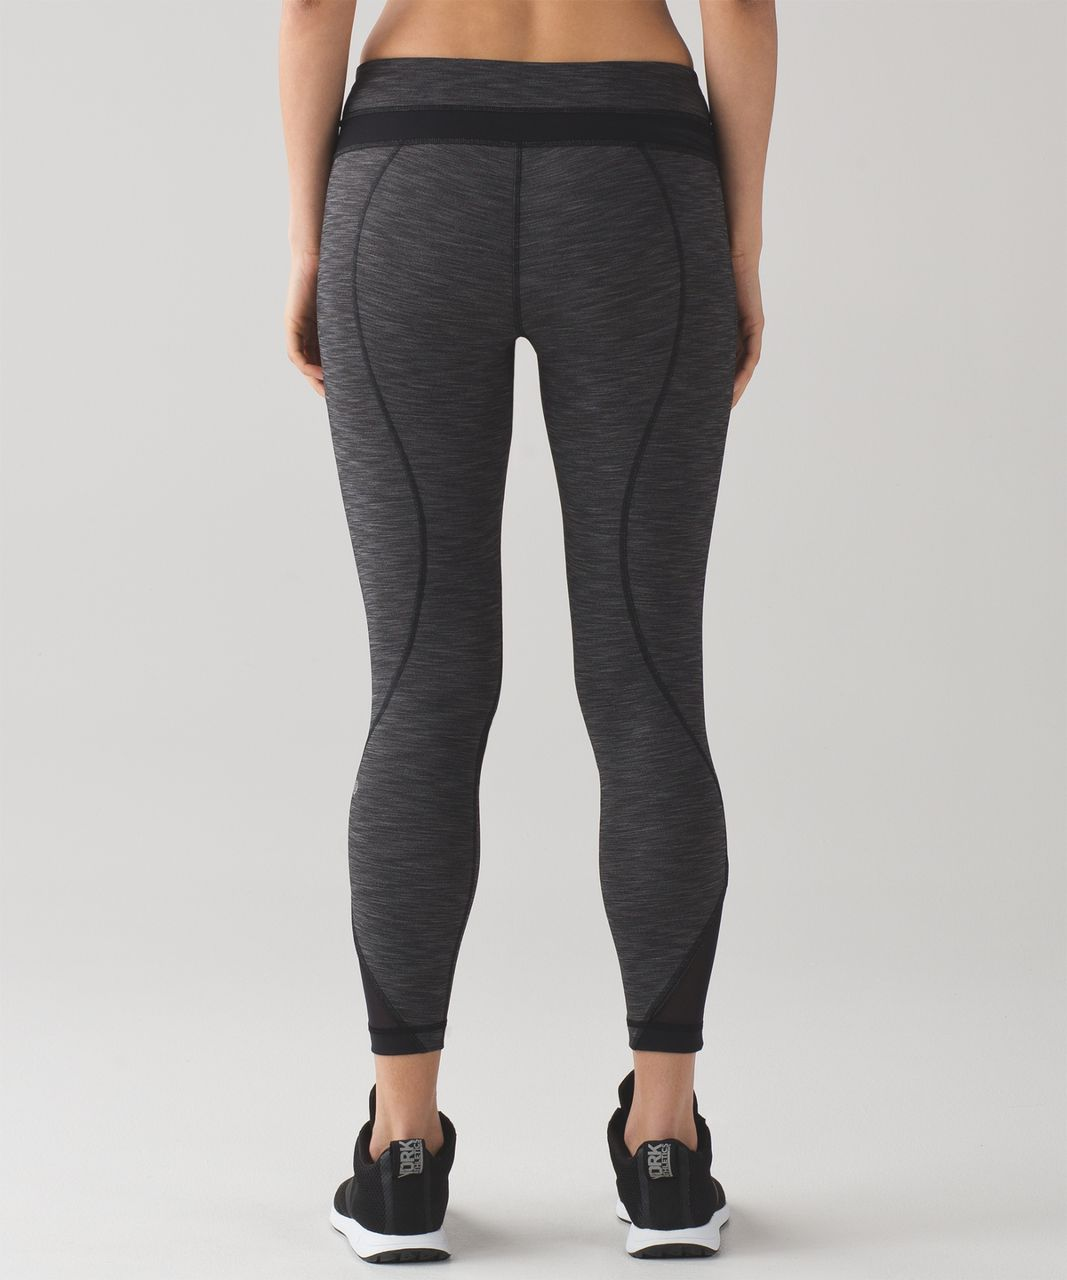 2e61a9ad20 Lululemon Inspire Tight II - Heathered Black / Heathered Black ...